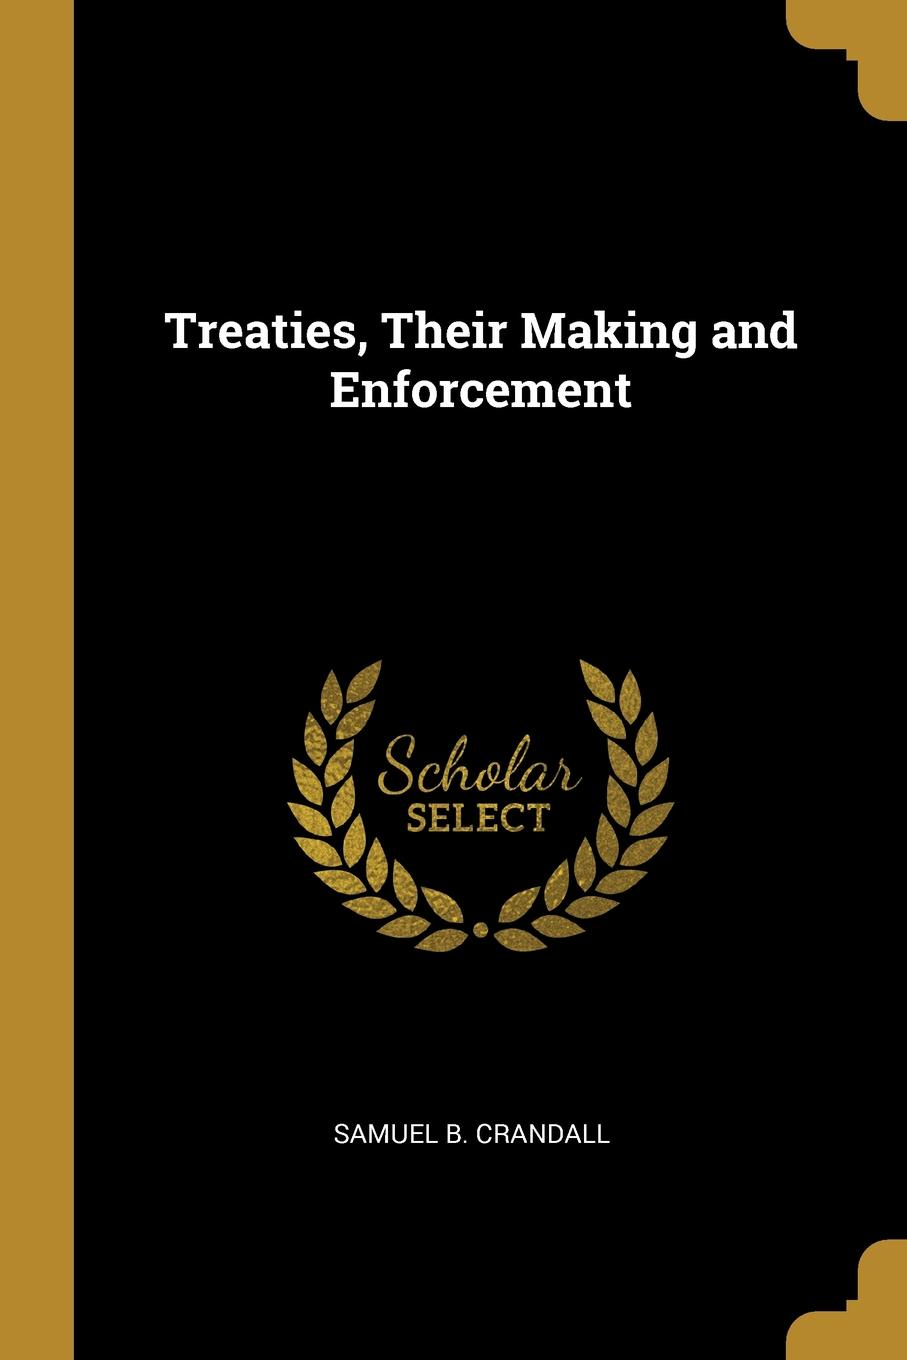 Samuel B. Crandall. Treaties, Their Making and Enforcement